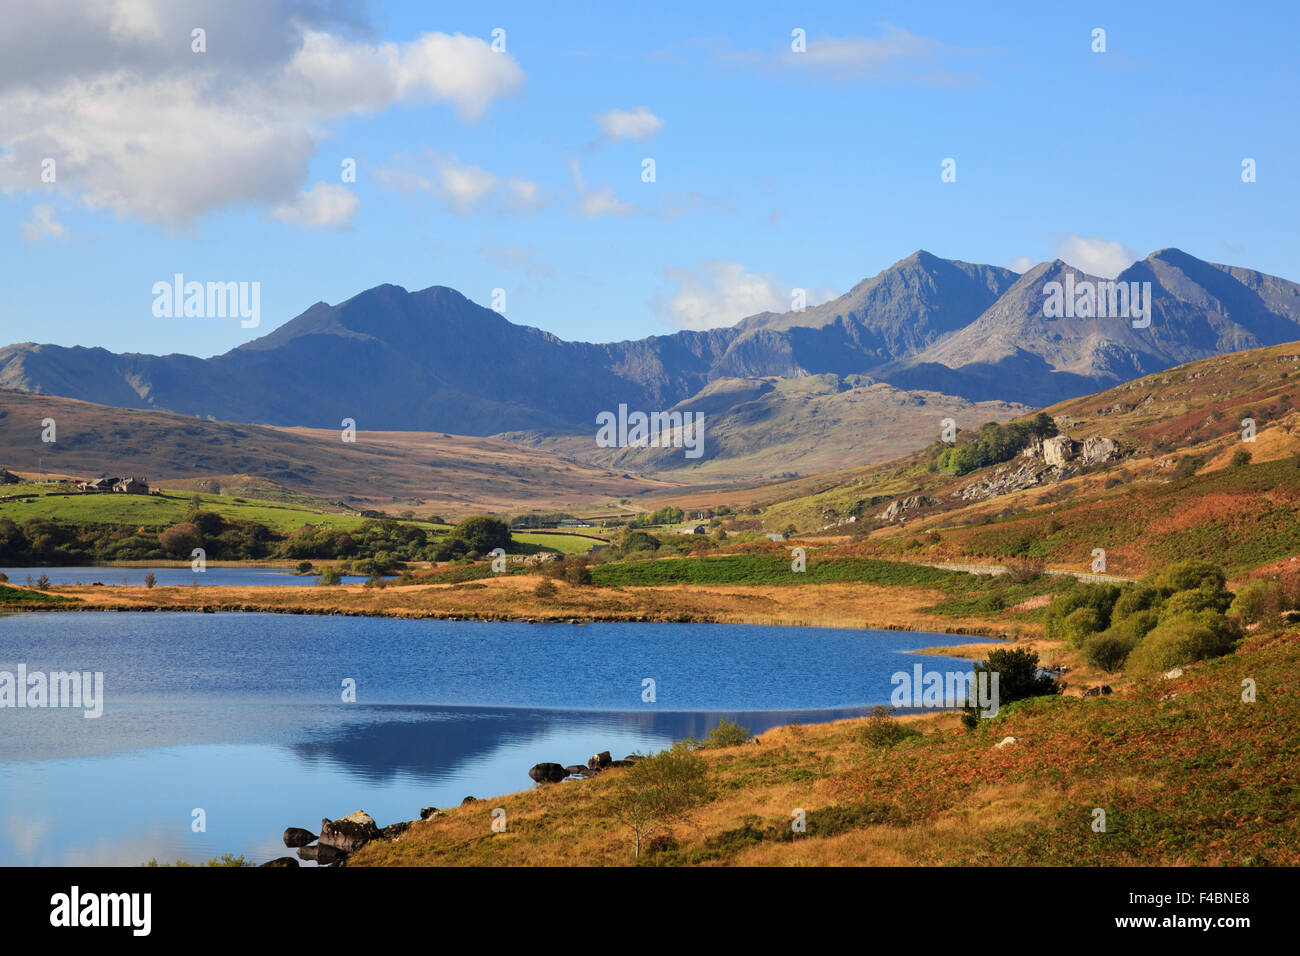 View to Mount Snowdon horseshoe mountains across Llynnau Mymbyr lakes in Snowdonia National Park (Eryri) in autumn. - Stock Image